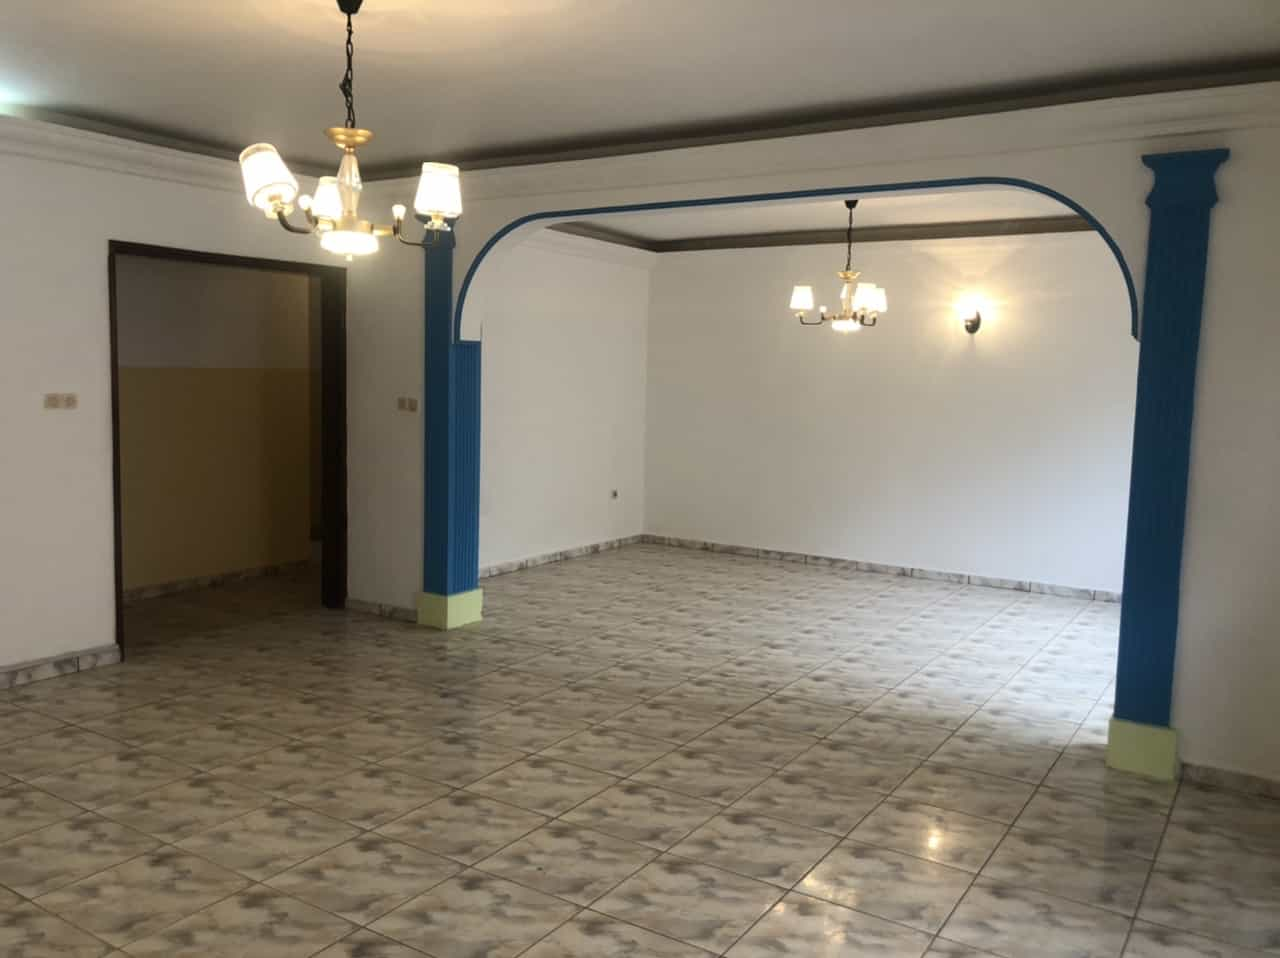 Apartment to rent - Yaoundé, Bastos, Carrefour Bastos - 1 living room(s), 3 bedroom(s), 3 bathroom(s) - 400 000 FCFA / month